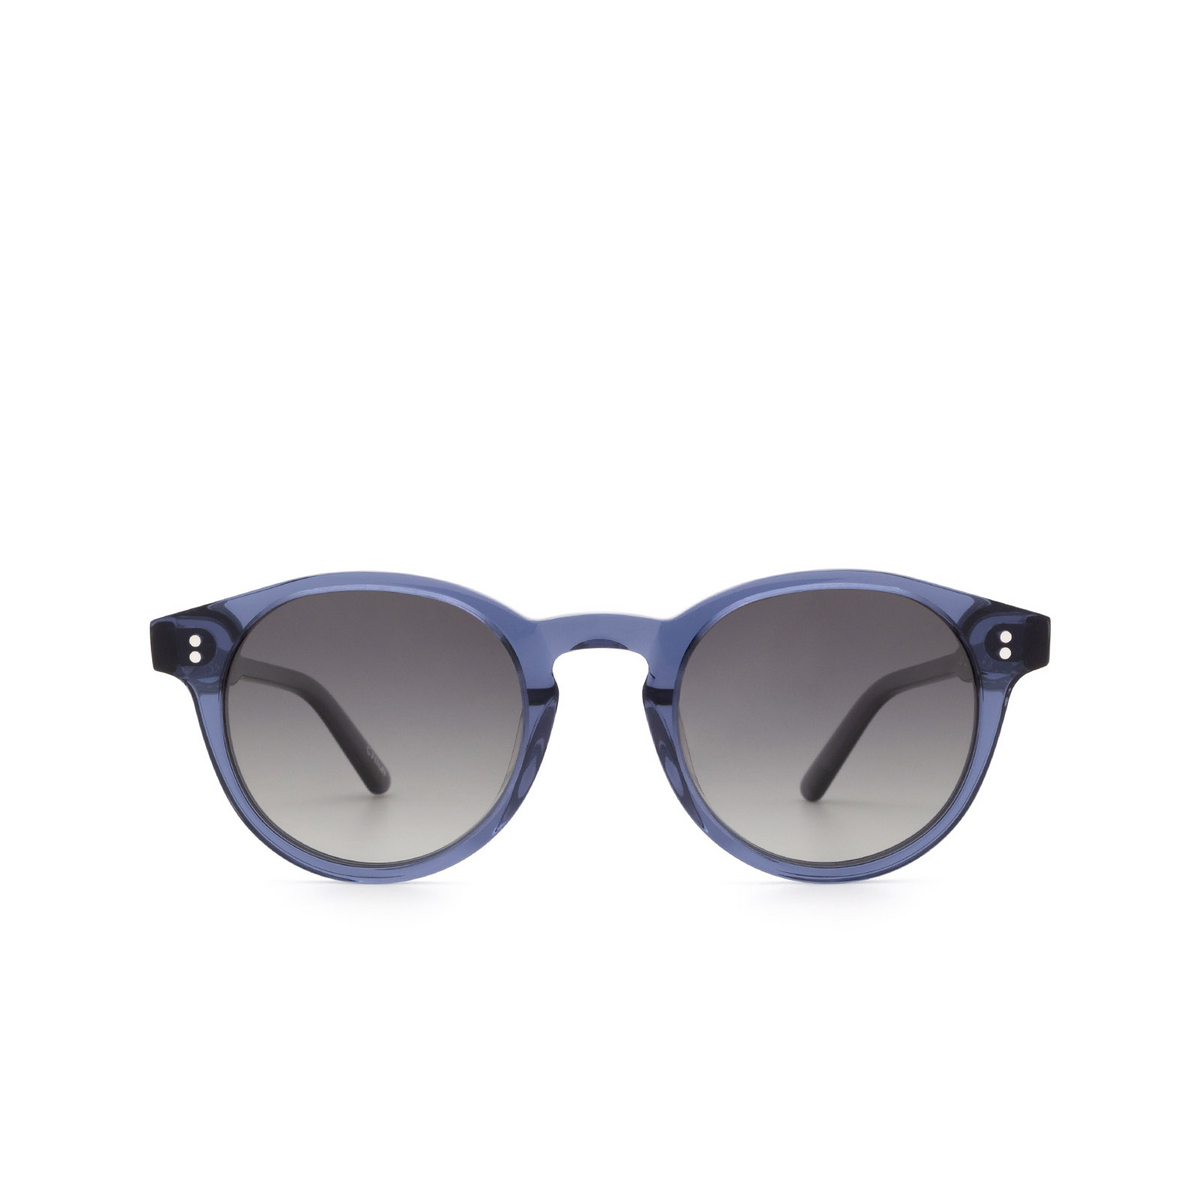 Chimi® Round Sunglasses: 03 color Blue - front view.